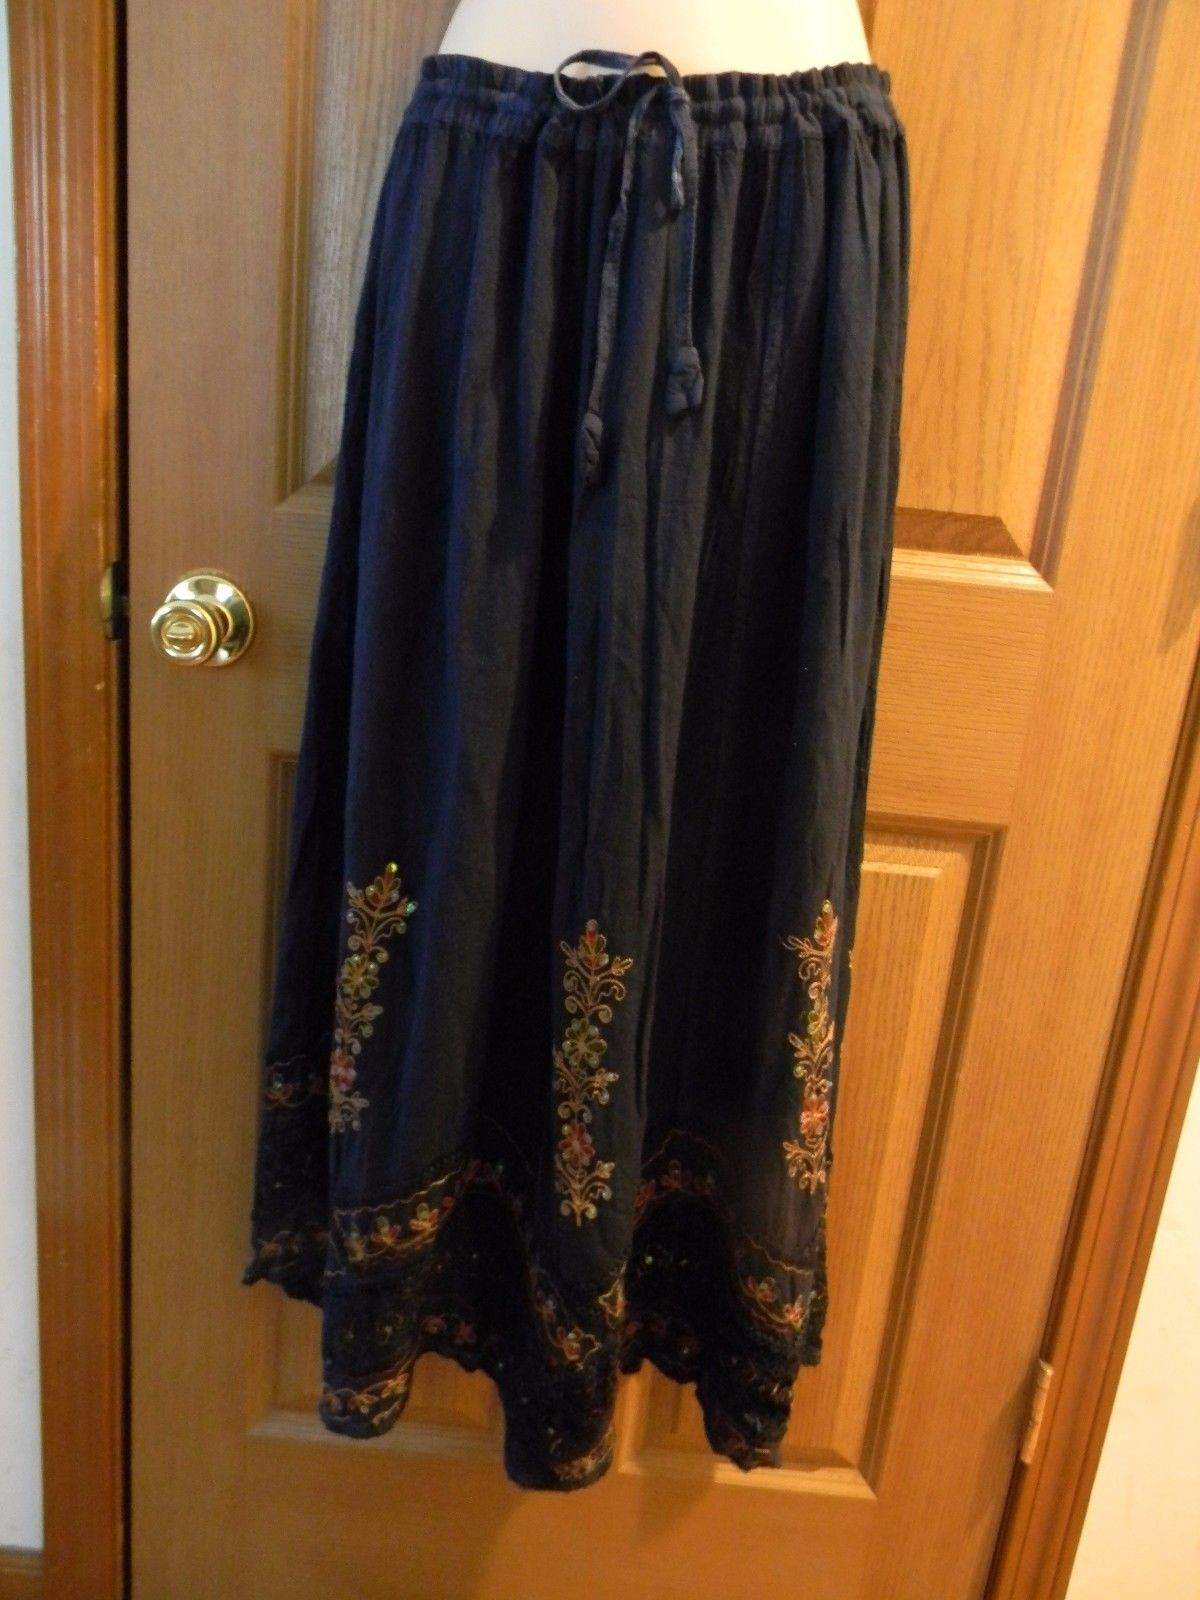 "SHORE LINE 39"" LONG 100% RAYON SKIRT XL W/SPARKLES SCALLOPED HEM INDIA LOVELY"